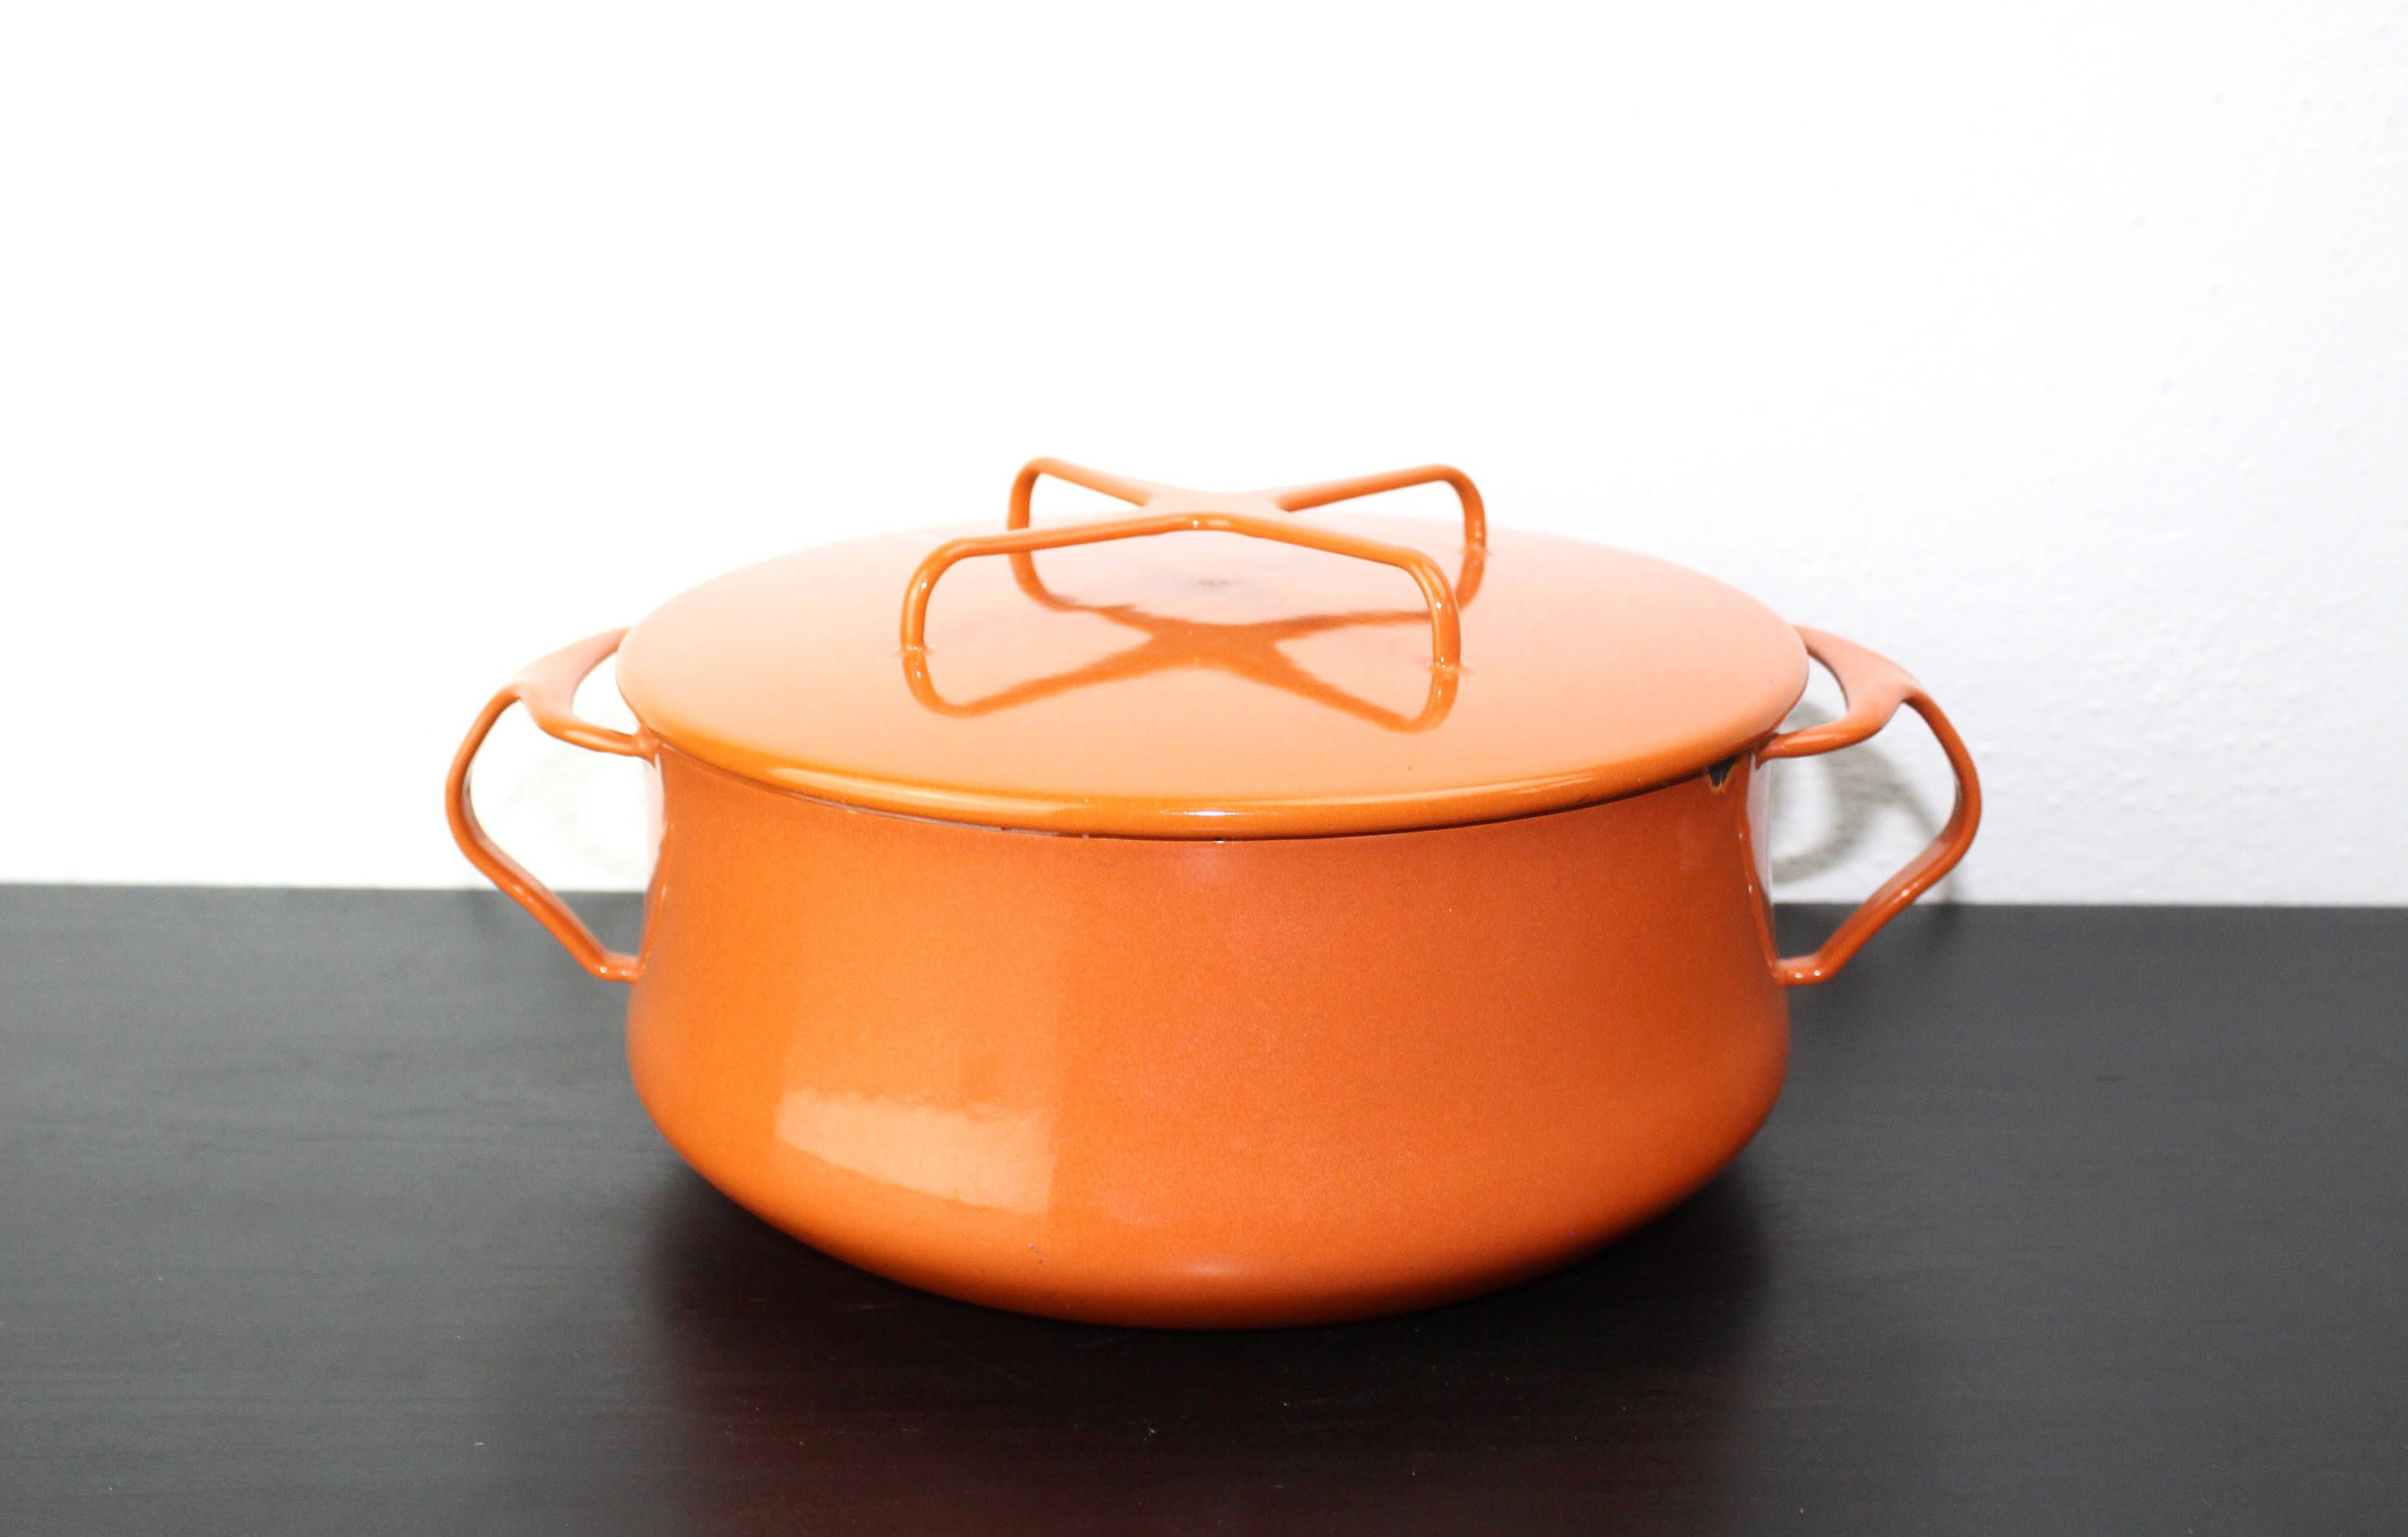 Vintage Dansk Kobenstyle 8 5 Inch Dutch Oven Orange Enameled Enamelware Enameled Steel Orange Enamel